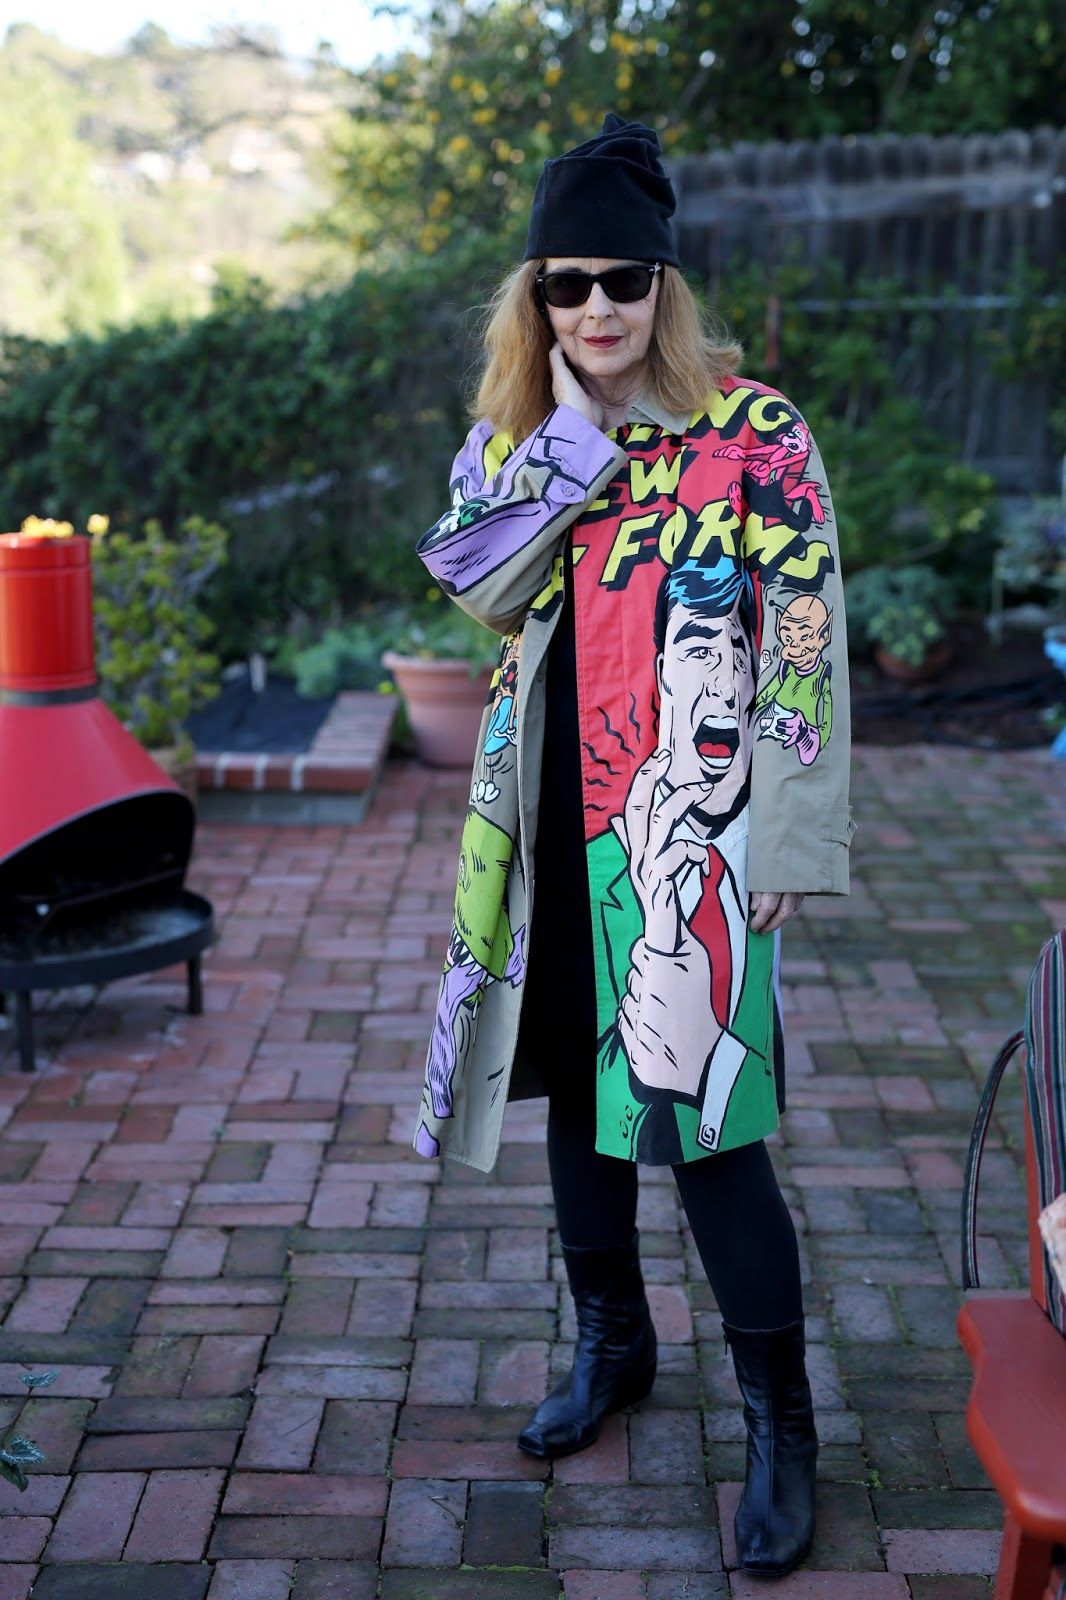 Painted raincoat by and worn by artist Suzan Pitt